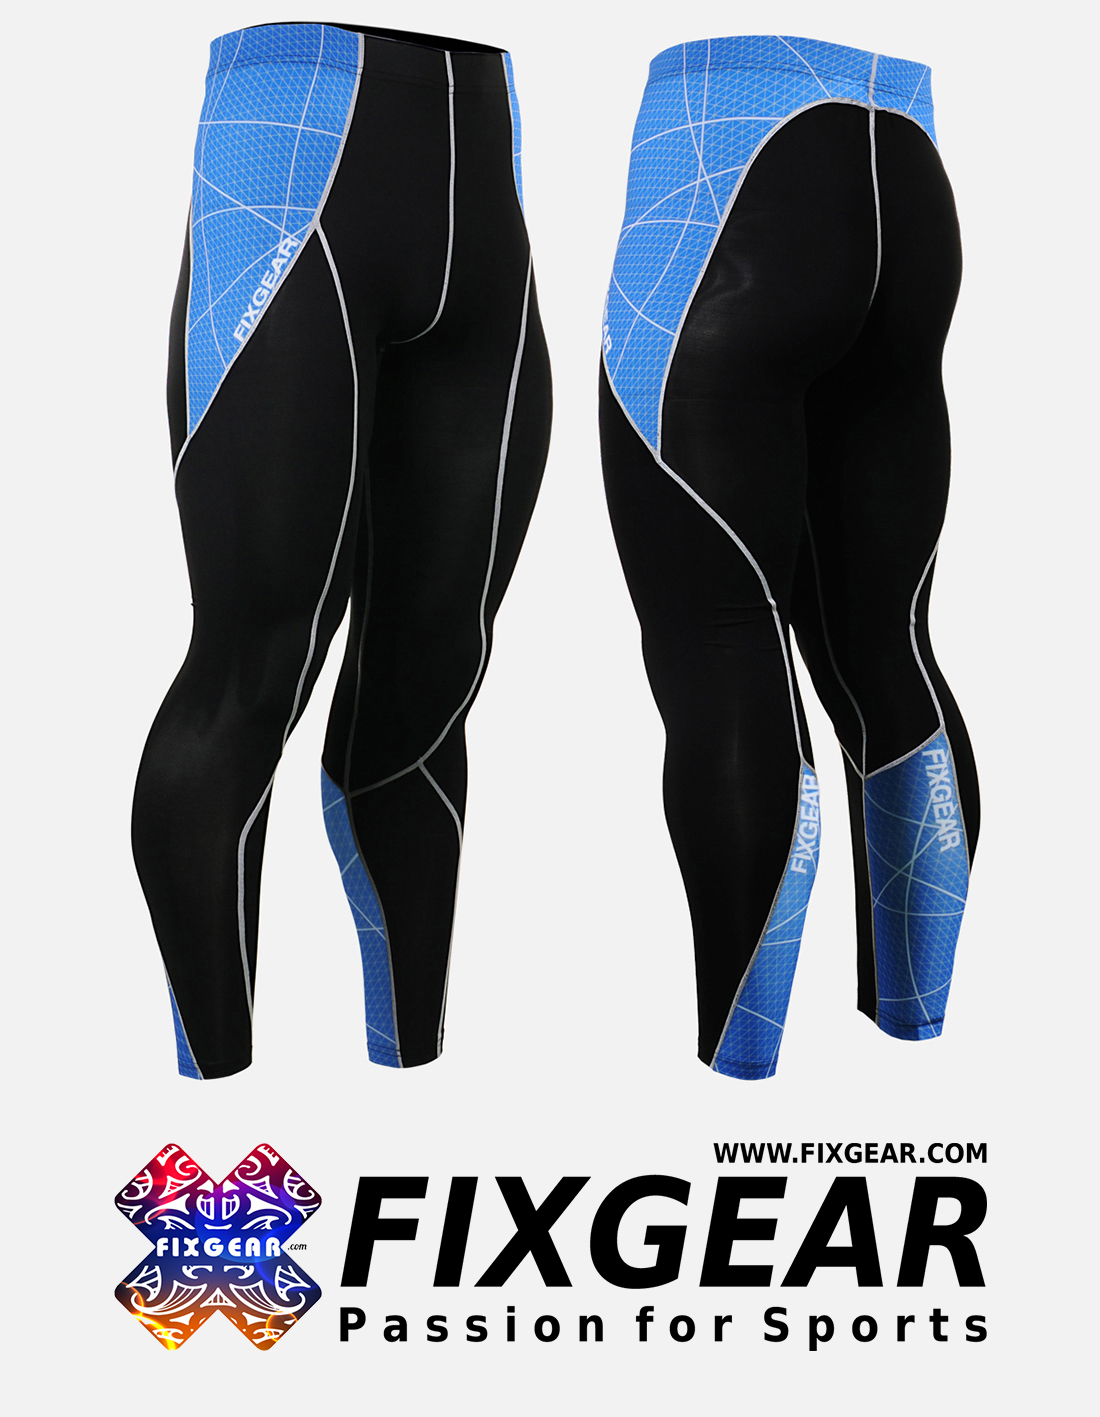 FIXGEAR P2L-B70B Compression Leggings Pants